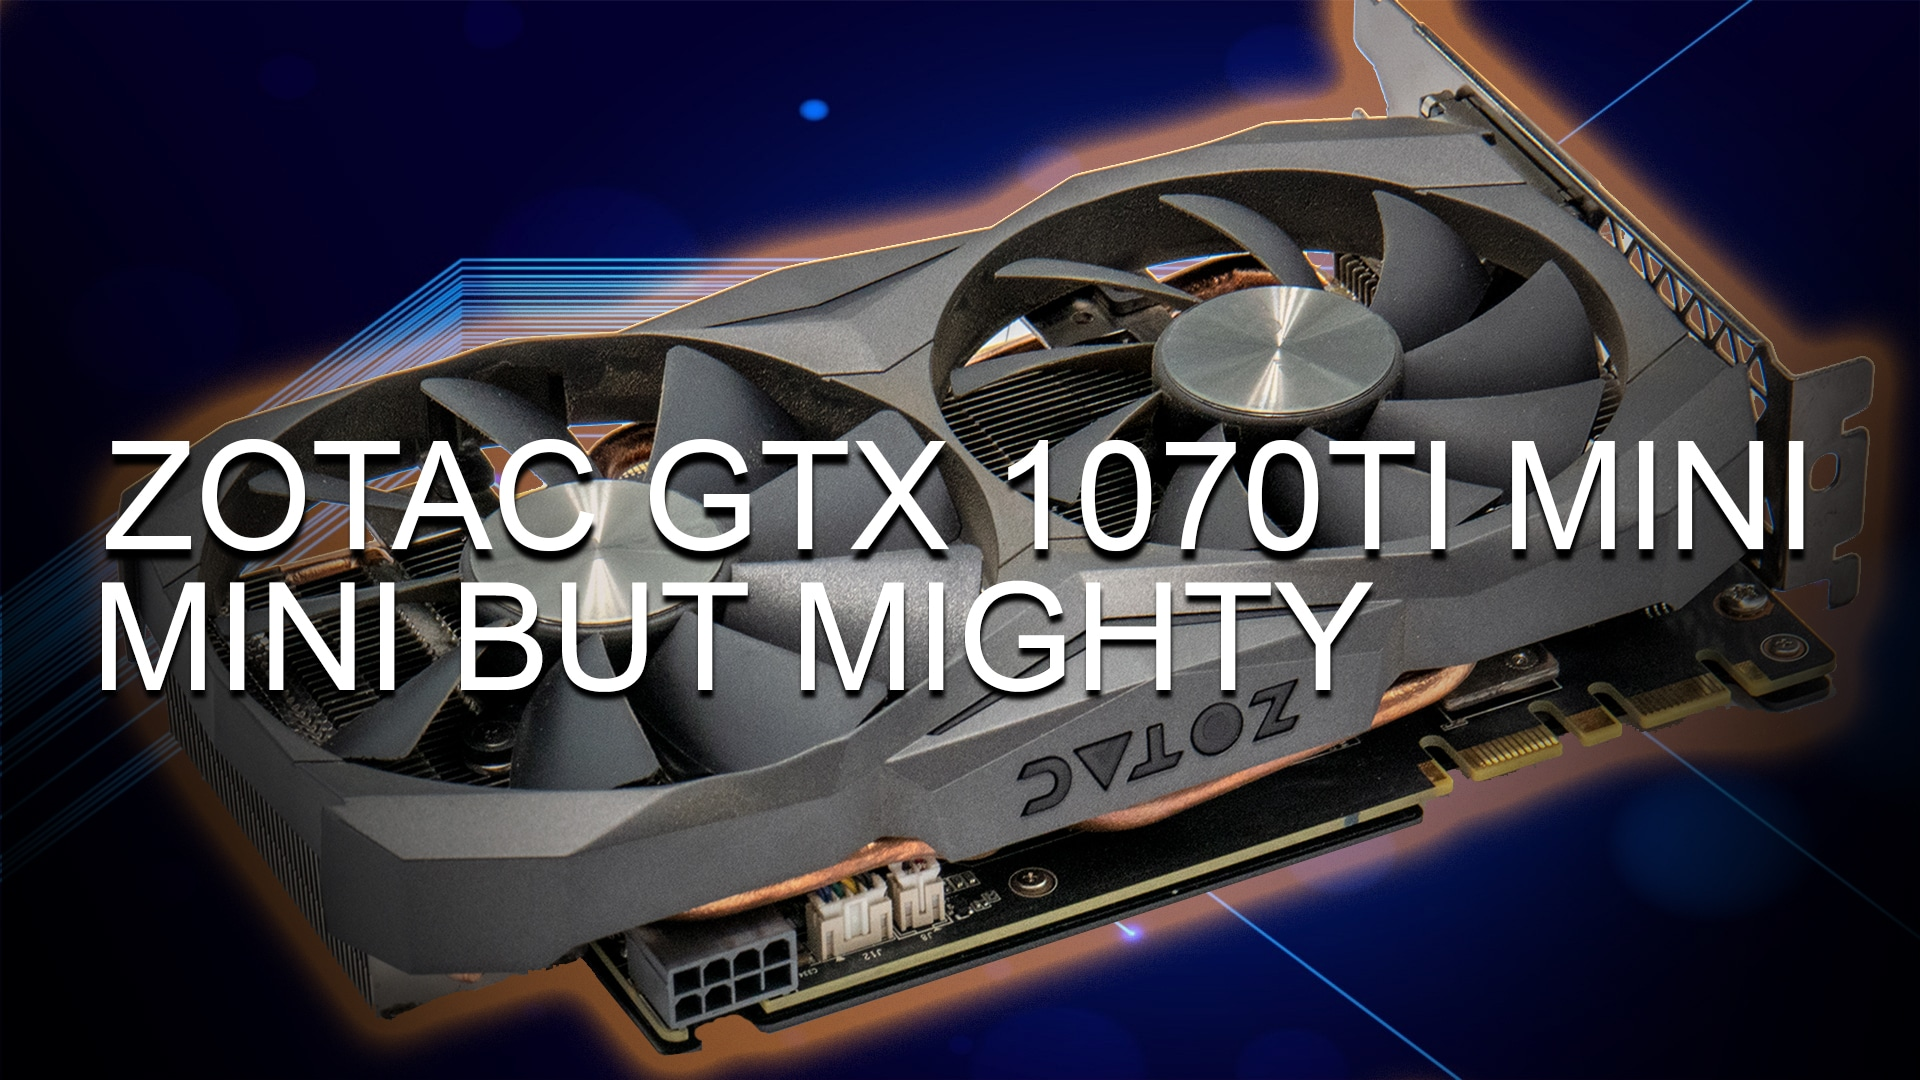 Zotac GTX 1070Ti Mini Review: Good things can come in small